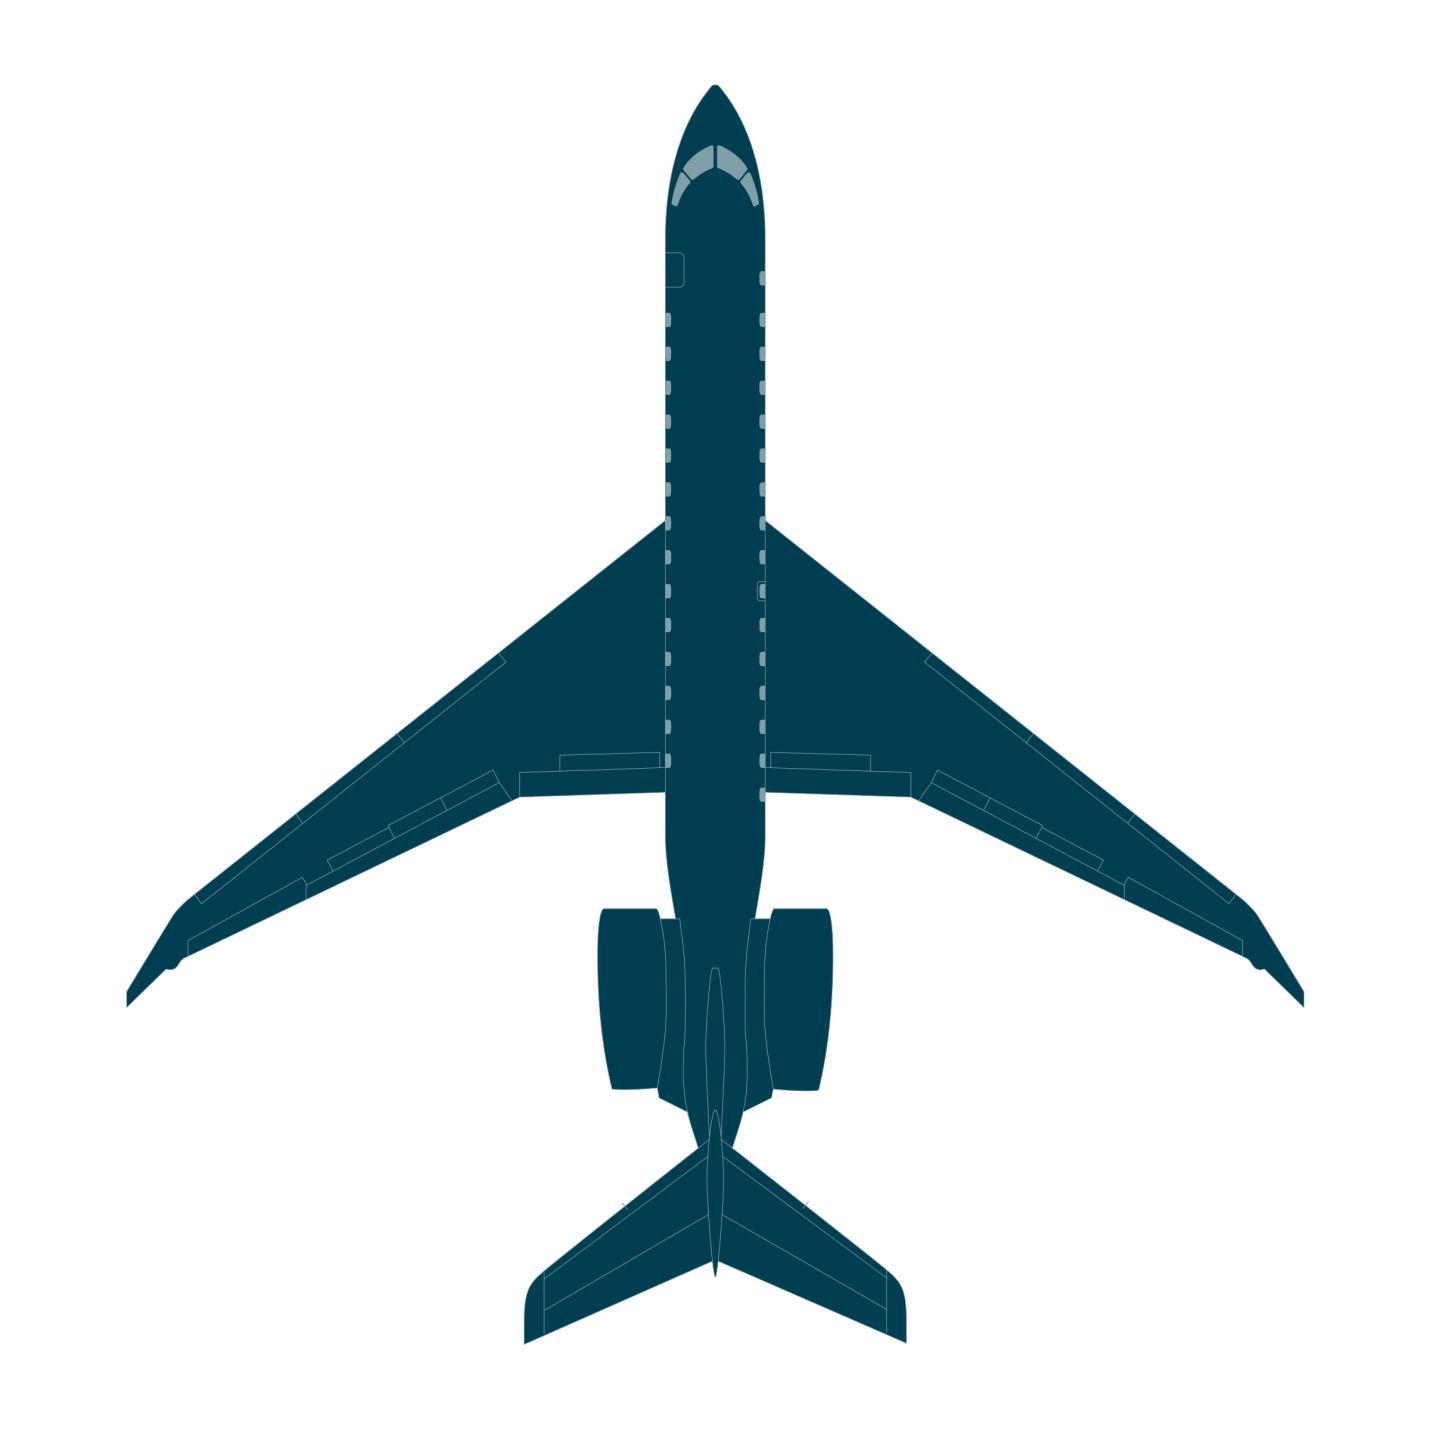 Airplane side view drawing clipart picture freeuse stock Clipart plane side view, Clipart plane side view Transparent FREE ... picture freeuse stock